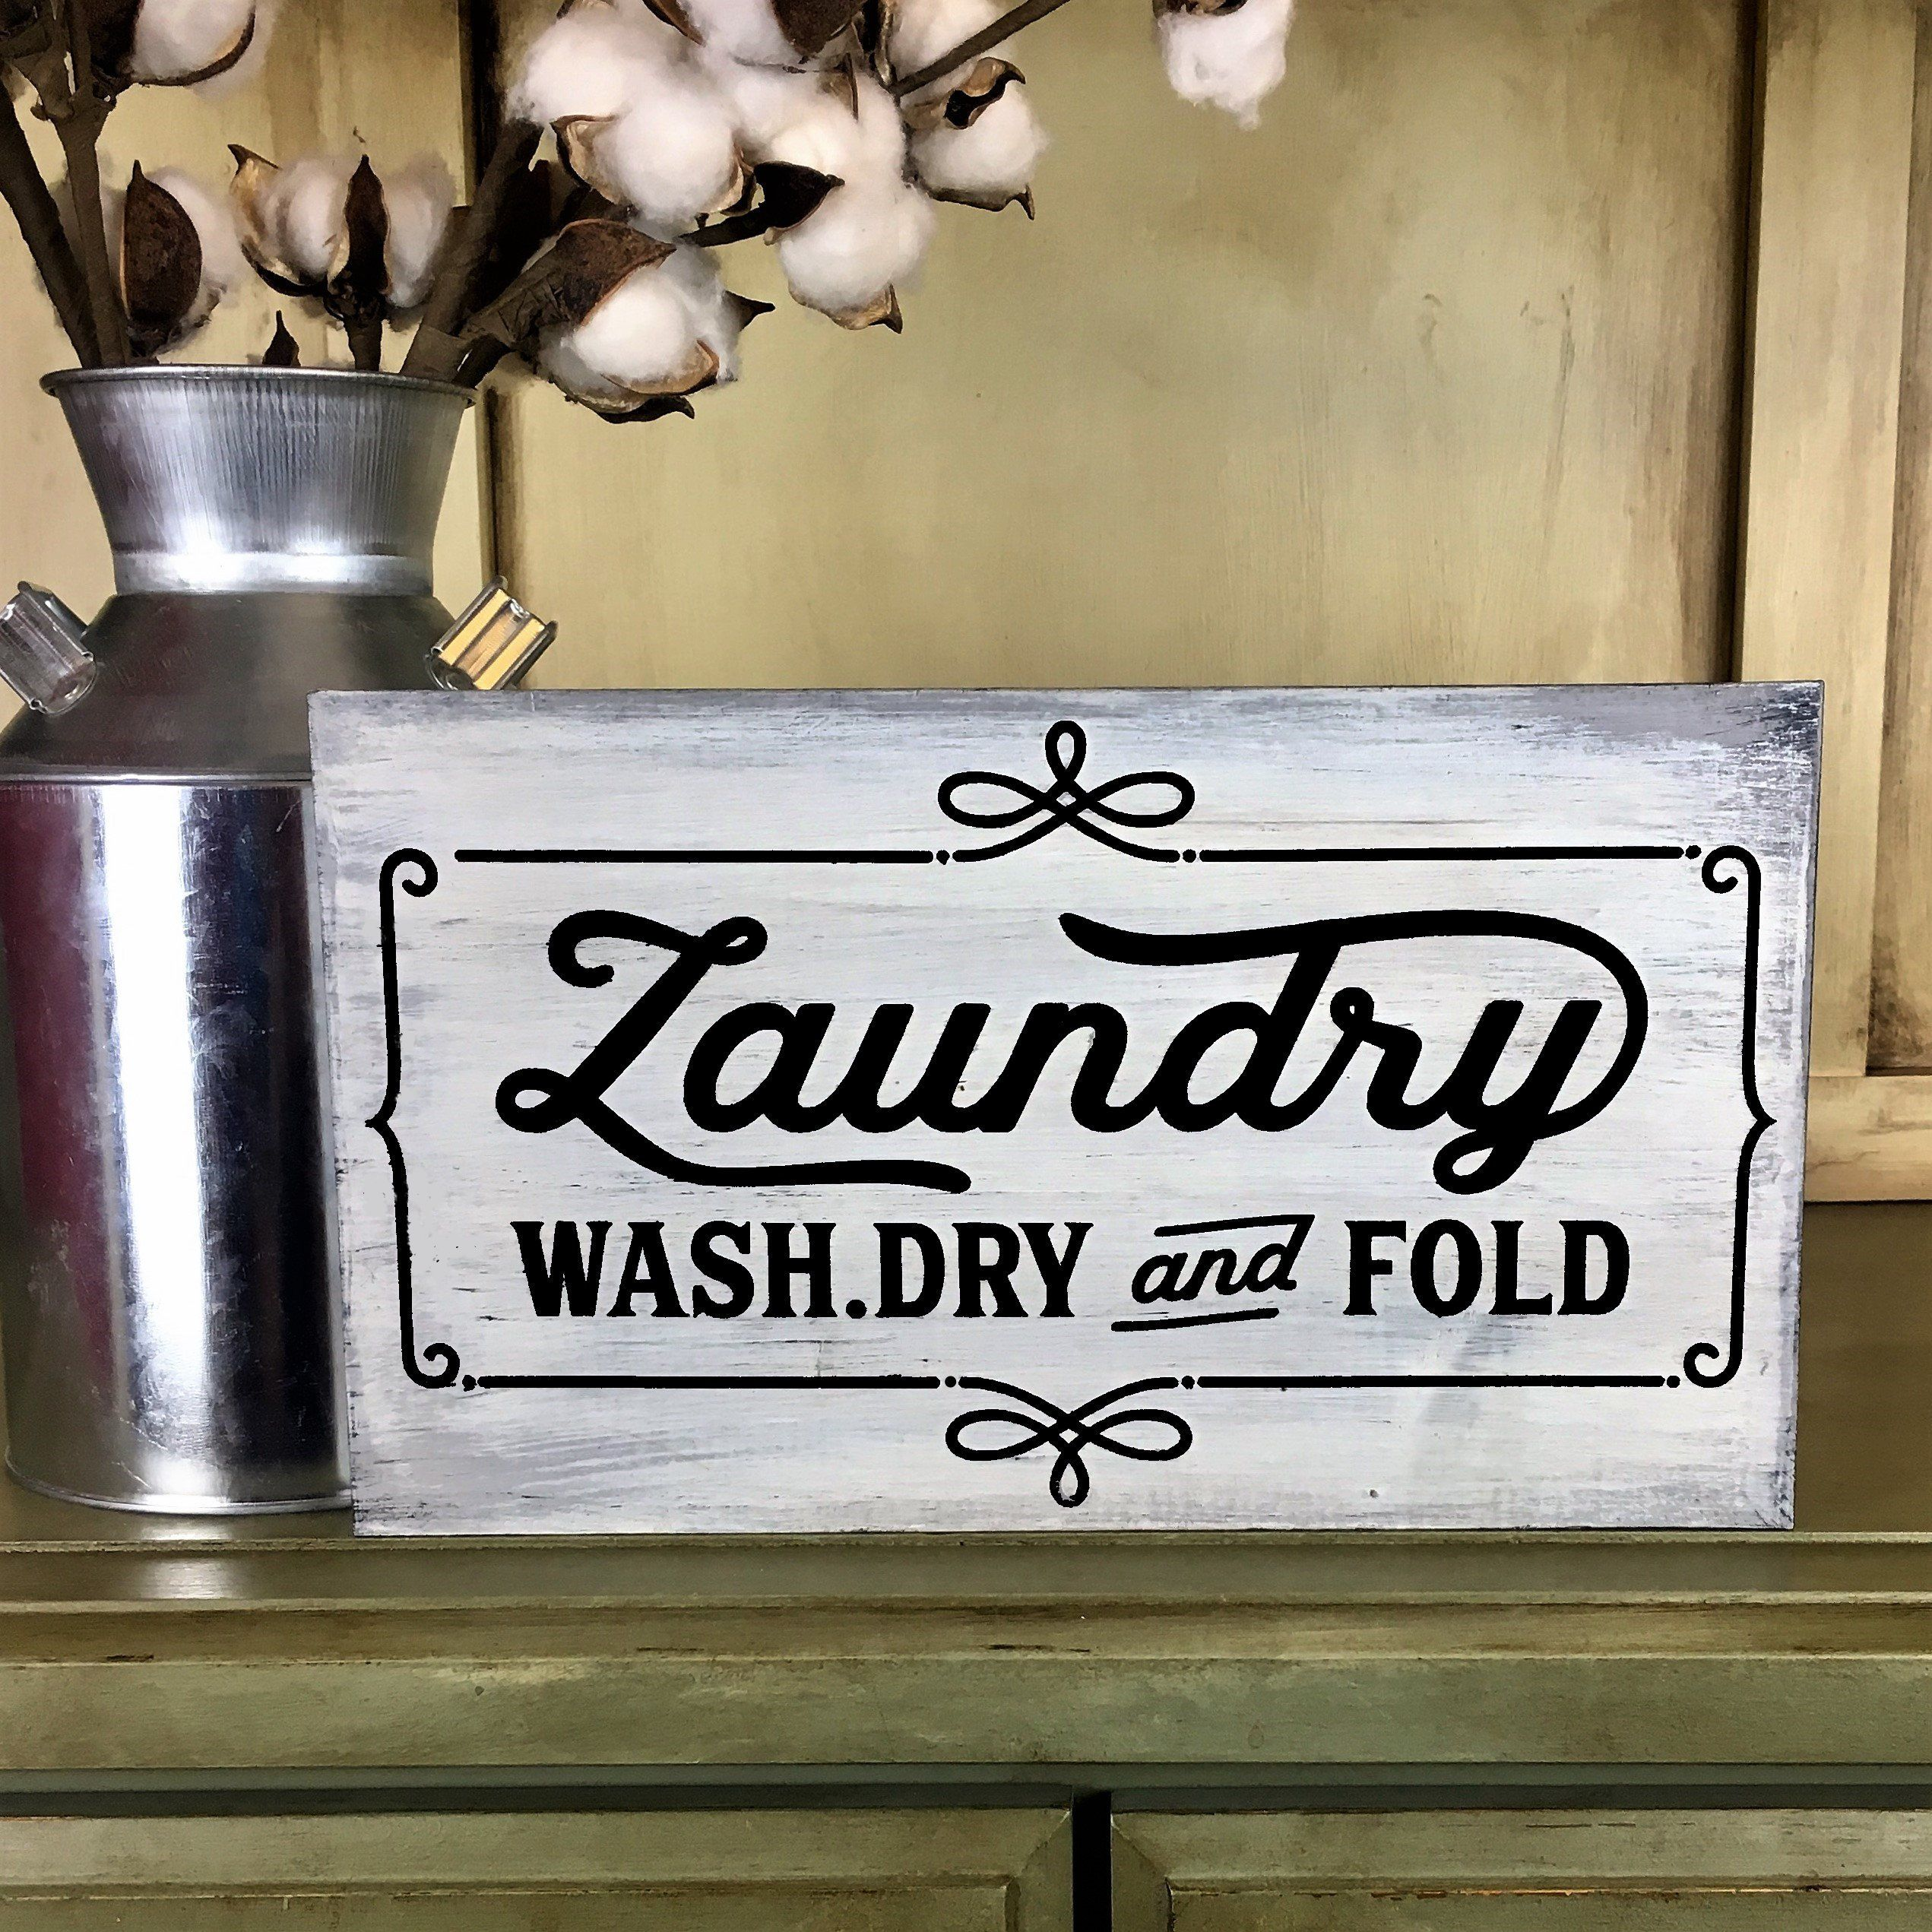 Wash Dry Fold Repeat Laundry Room Decor Laundry Sign Laundry Room Sign Laundry Room Wall Art Wash And Dry Sign New Home Gift Laundry Laundry Room Wall Art Laundry Room Signs